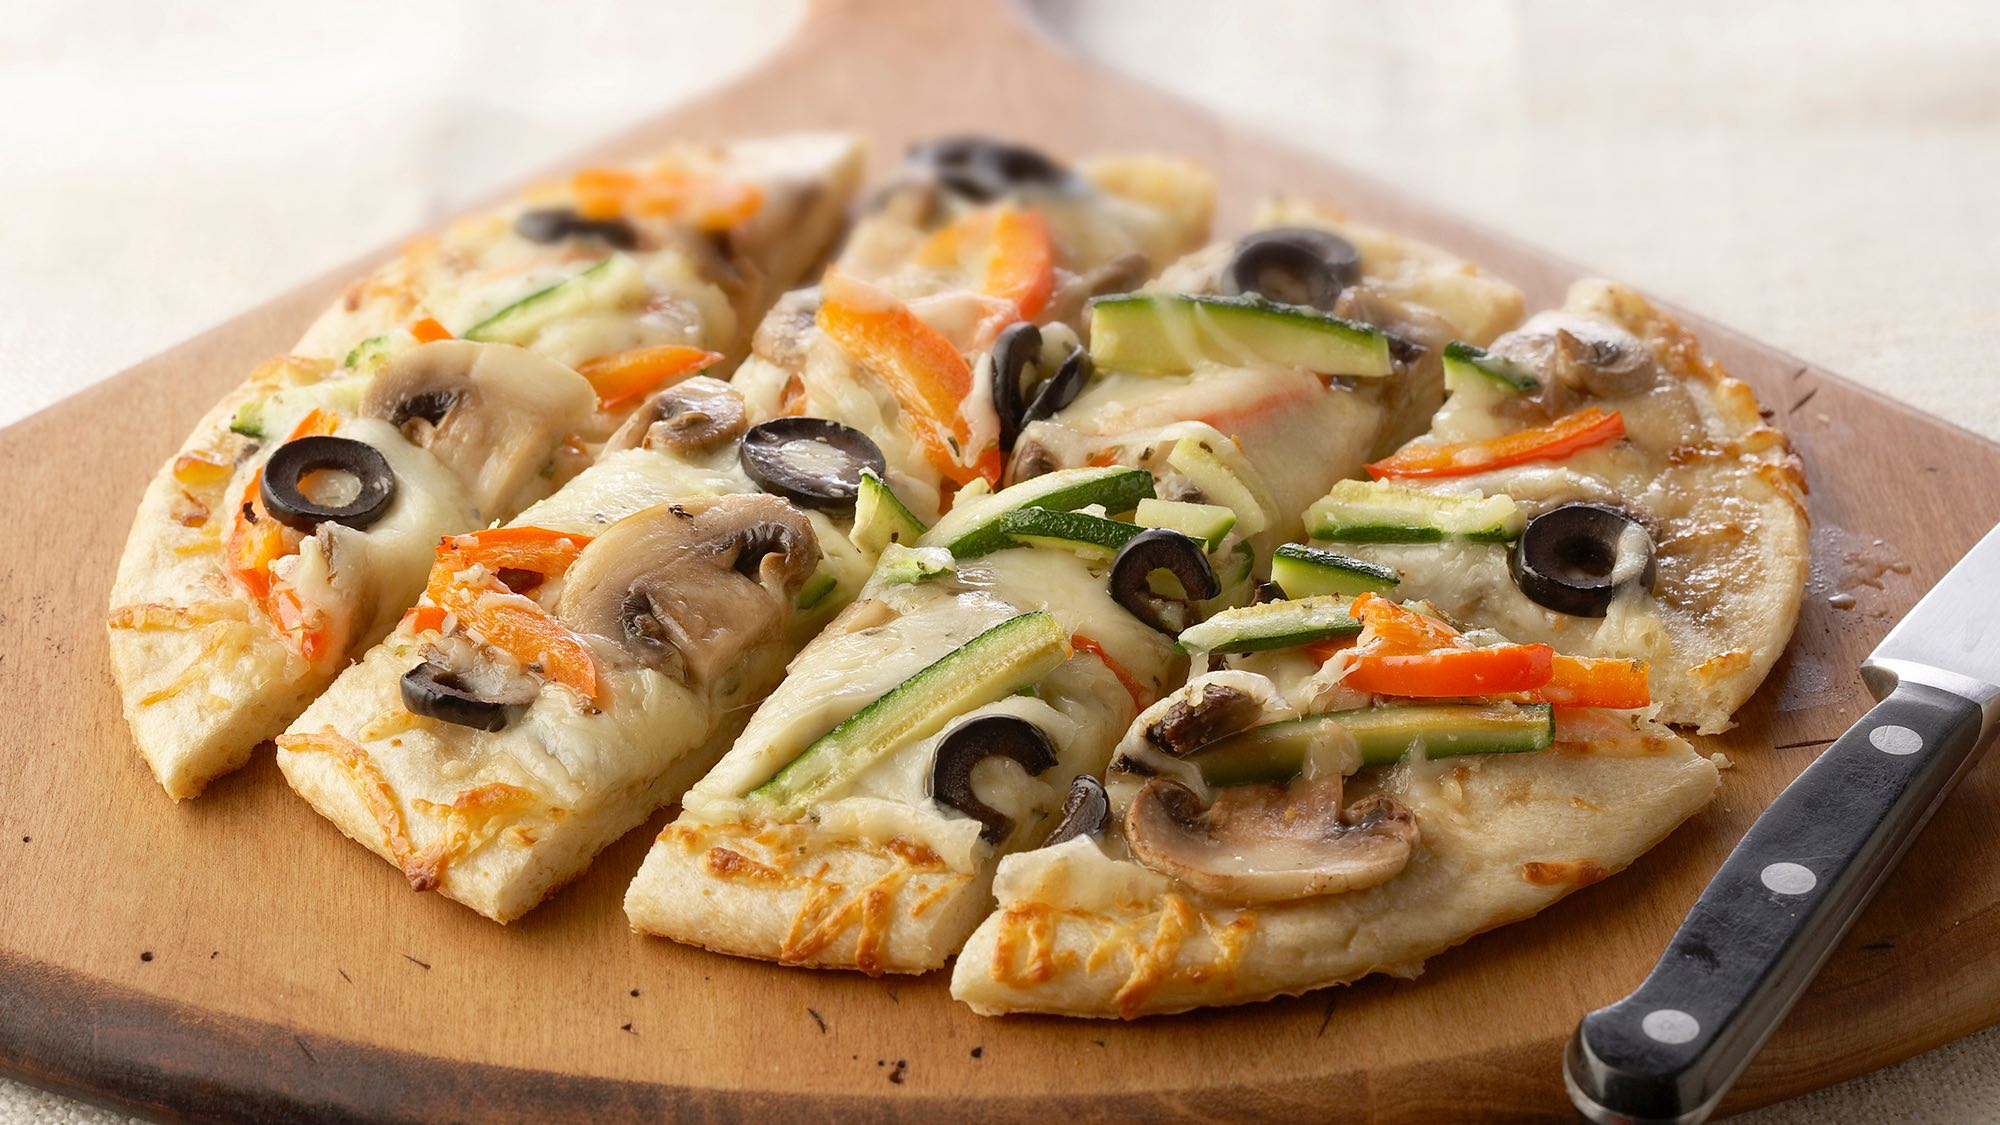 McCormick Vegetable Pizza